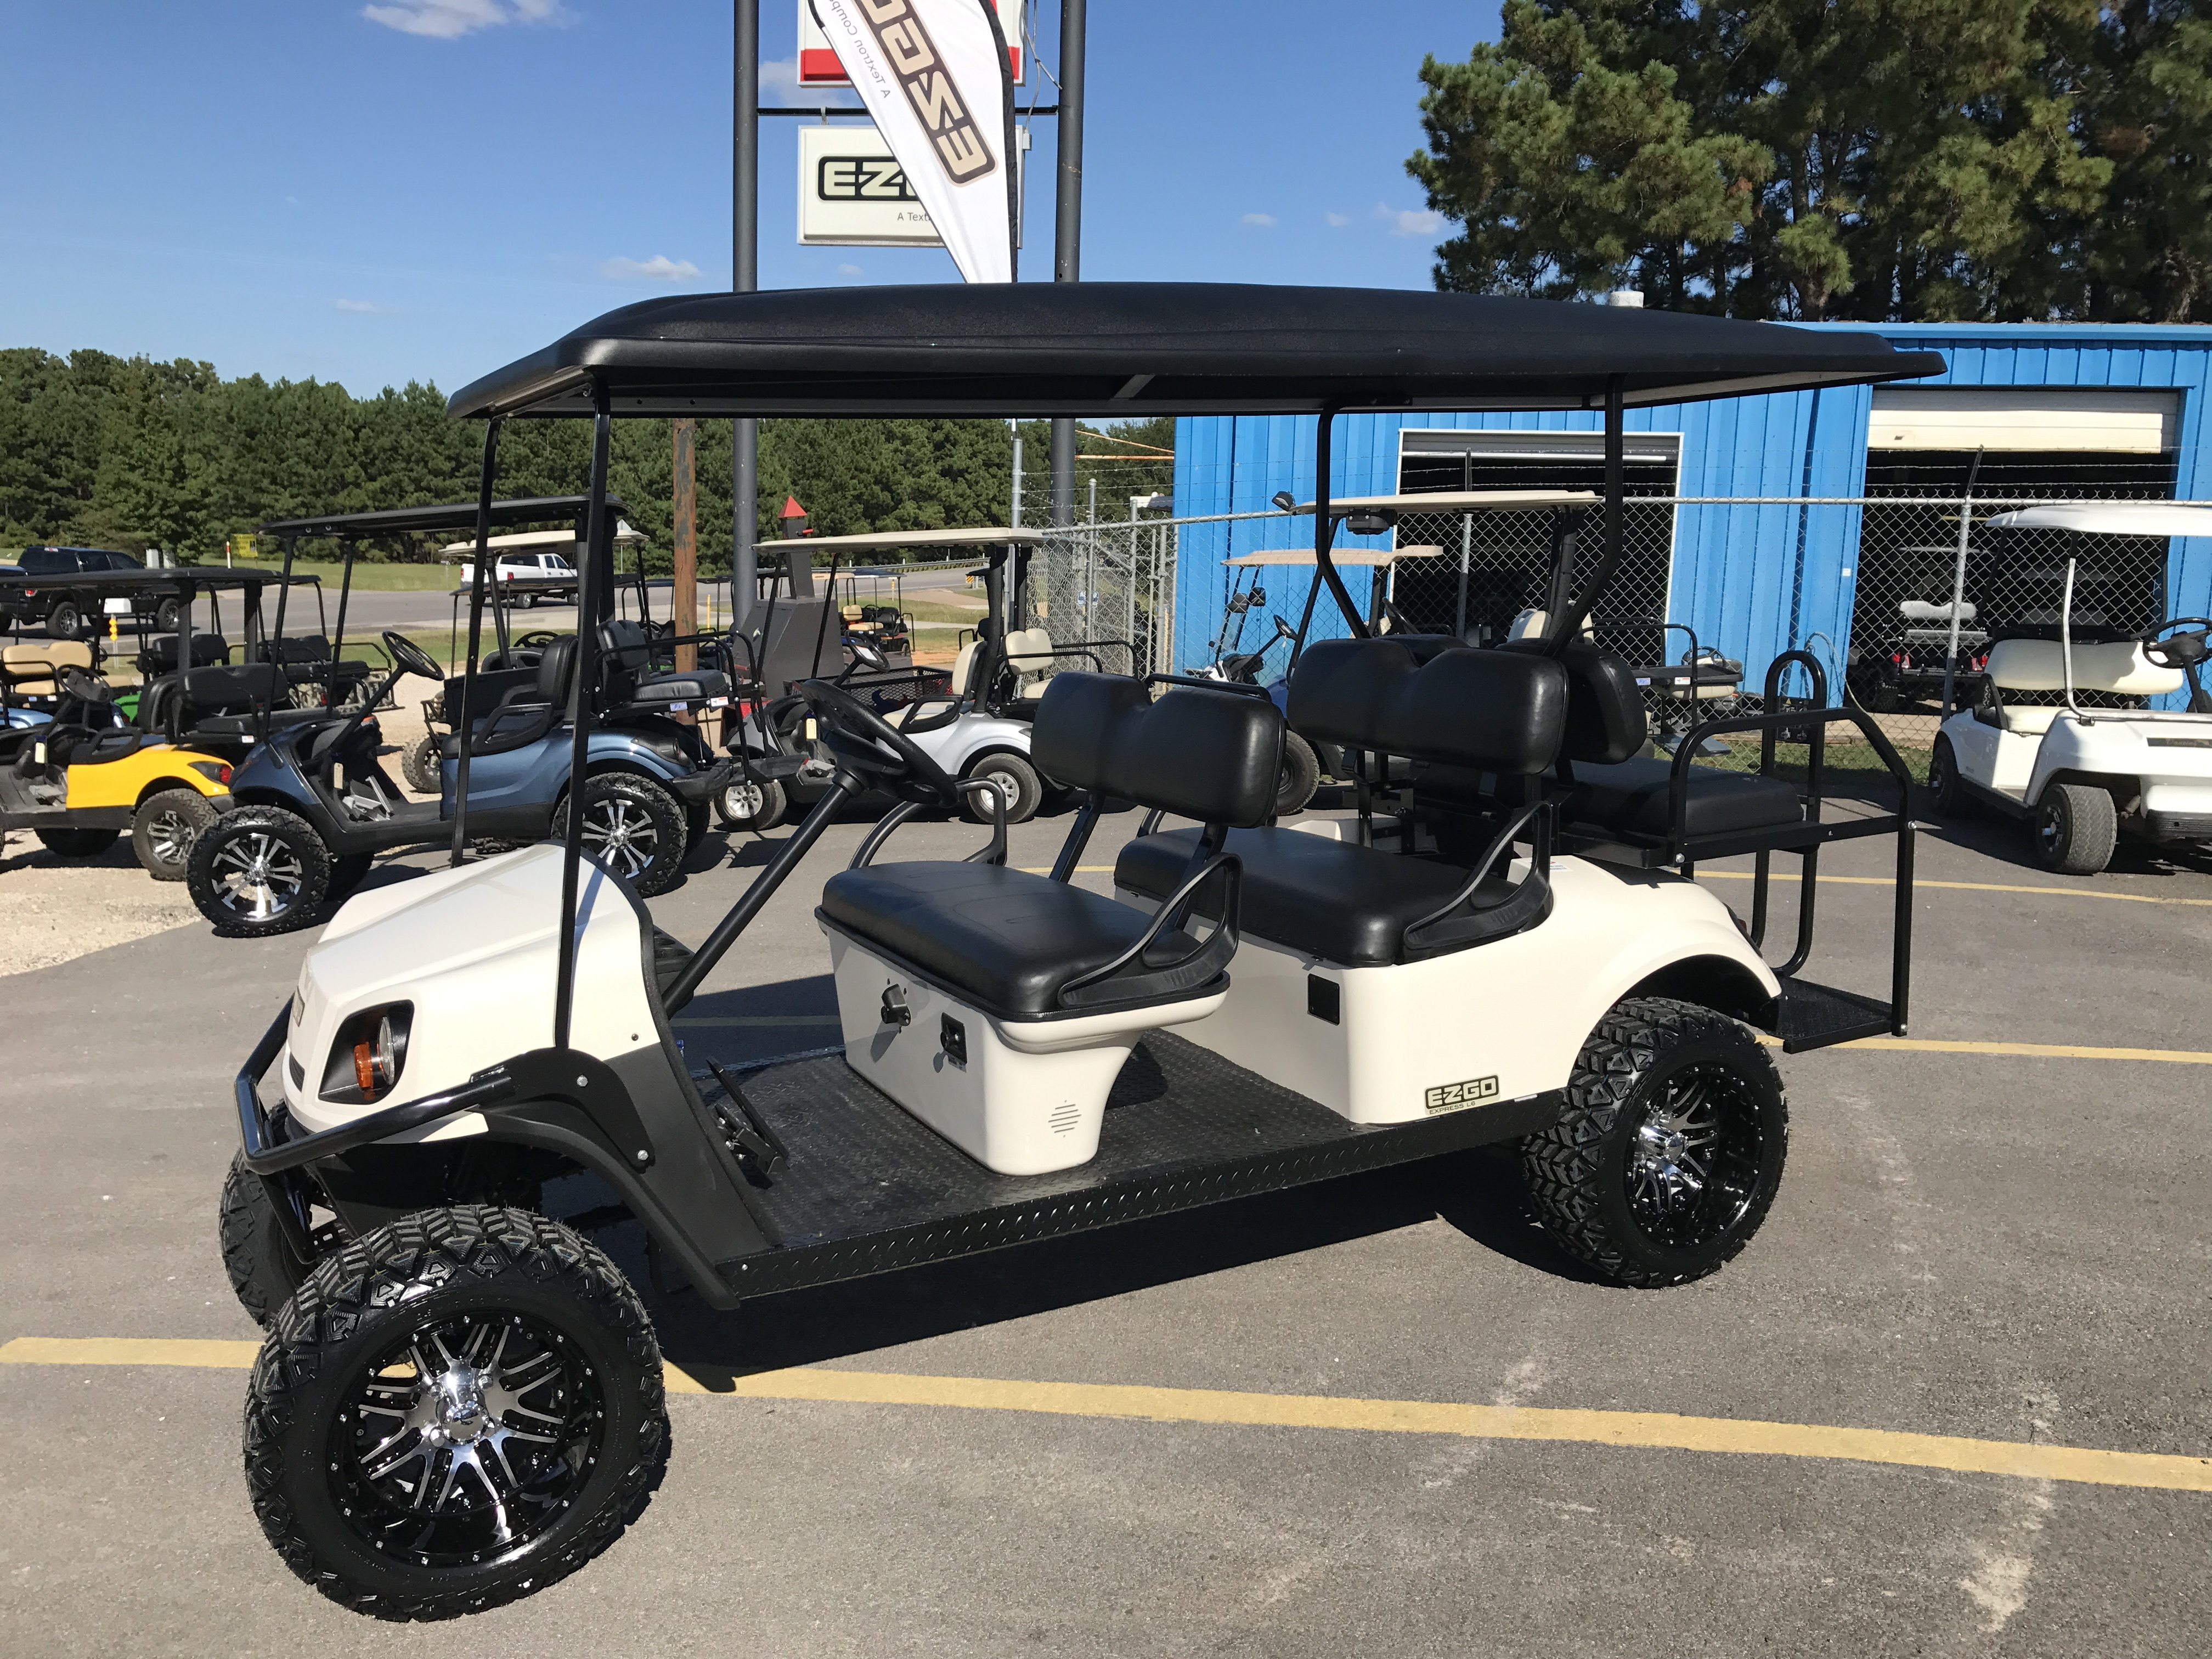 Neoprene P 16181 further 2017 Ezgo White L6 Shuttle Six Passenger further NISSAN Car Radio Wiring Connector together with Golf Cart Top 88 Inch Rhox Black additionally Prod info. on yamaha golf cart colors